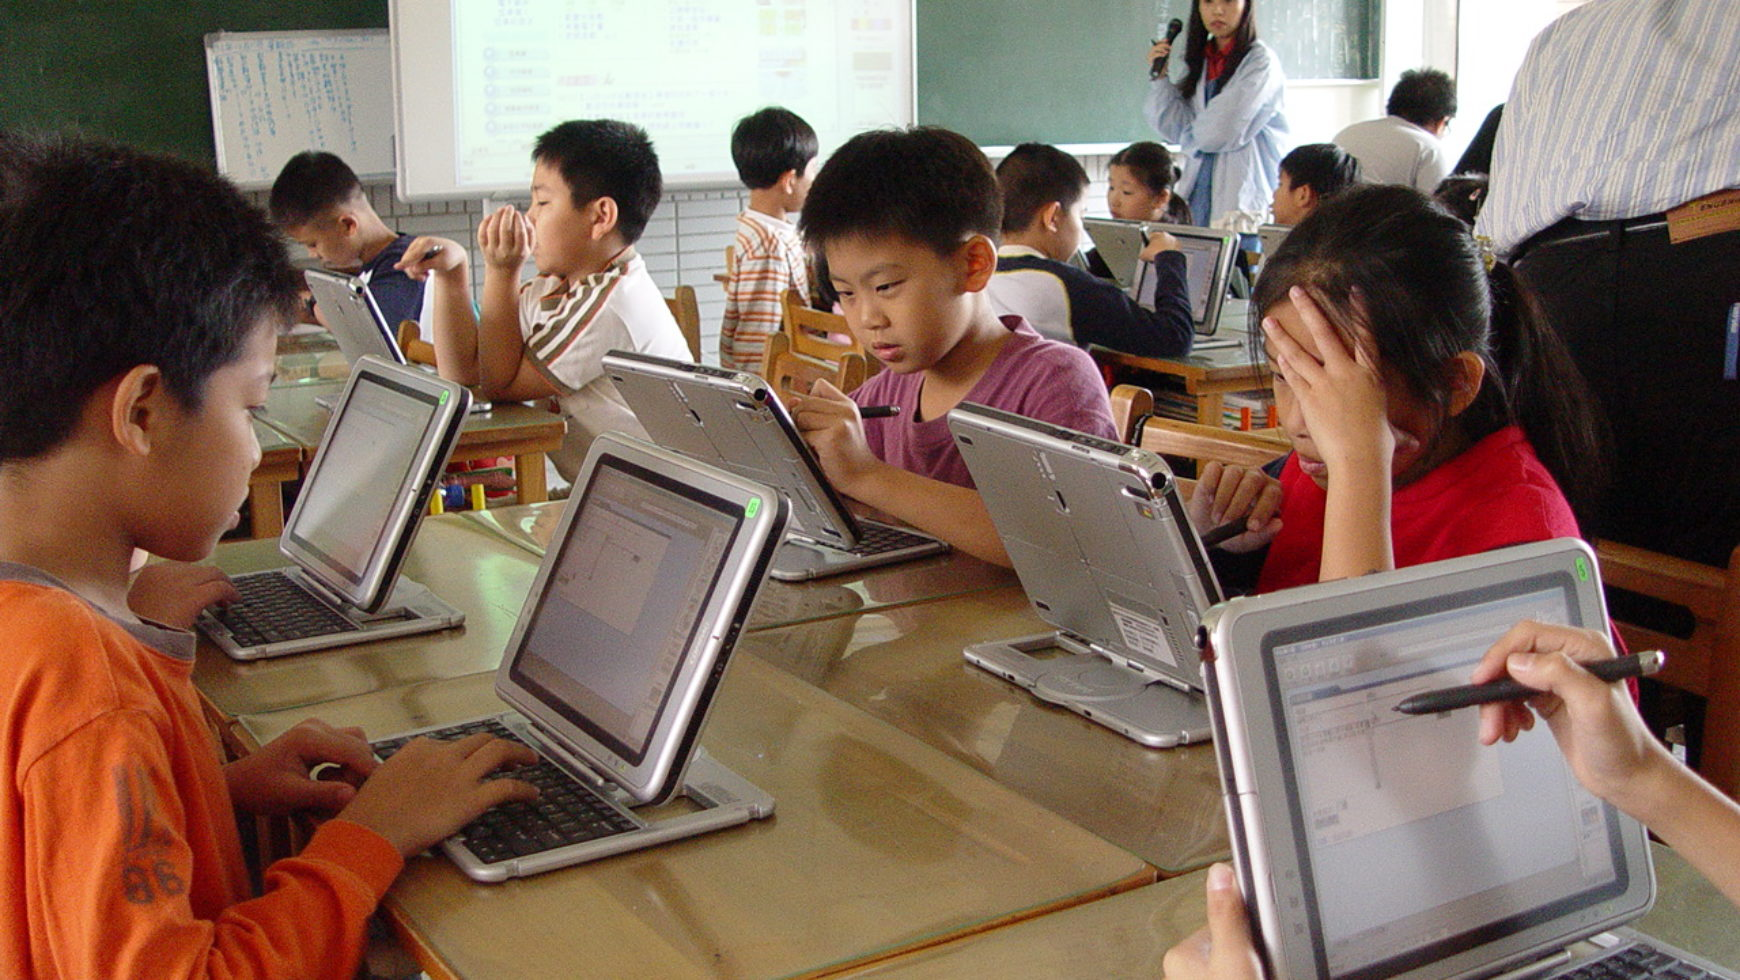 Technology in Education: Advantages and Disadvantages